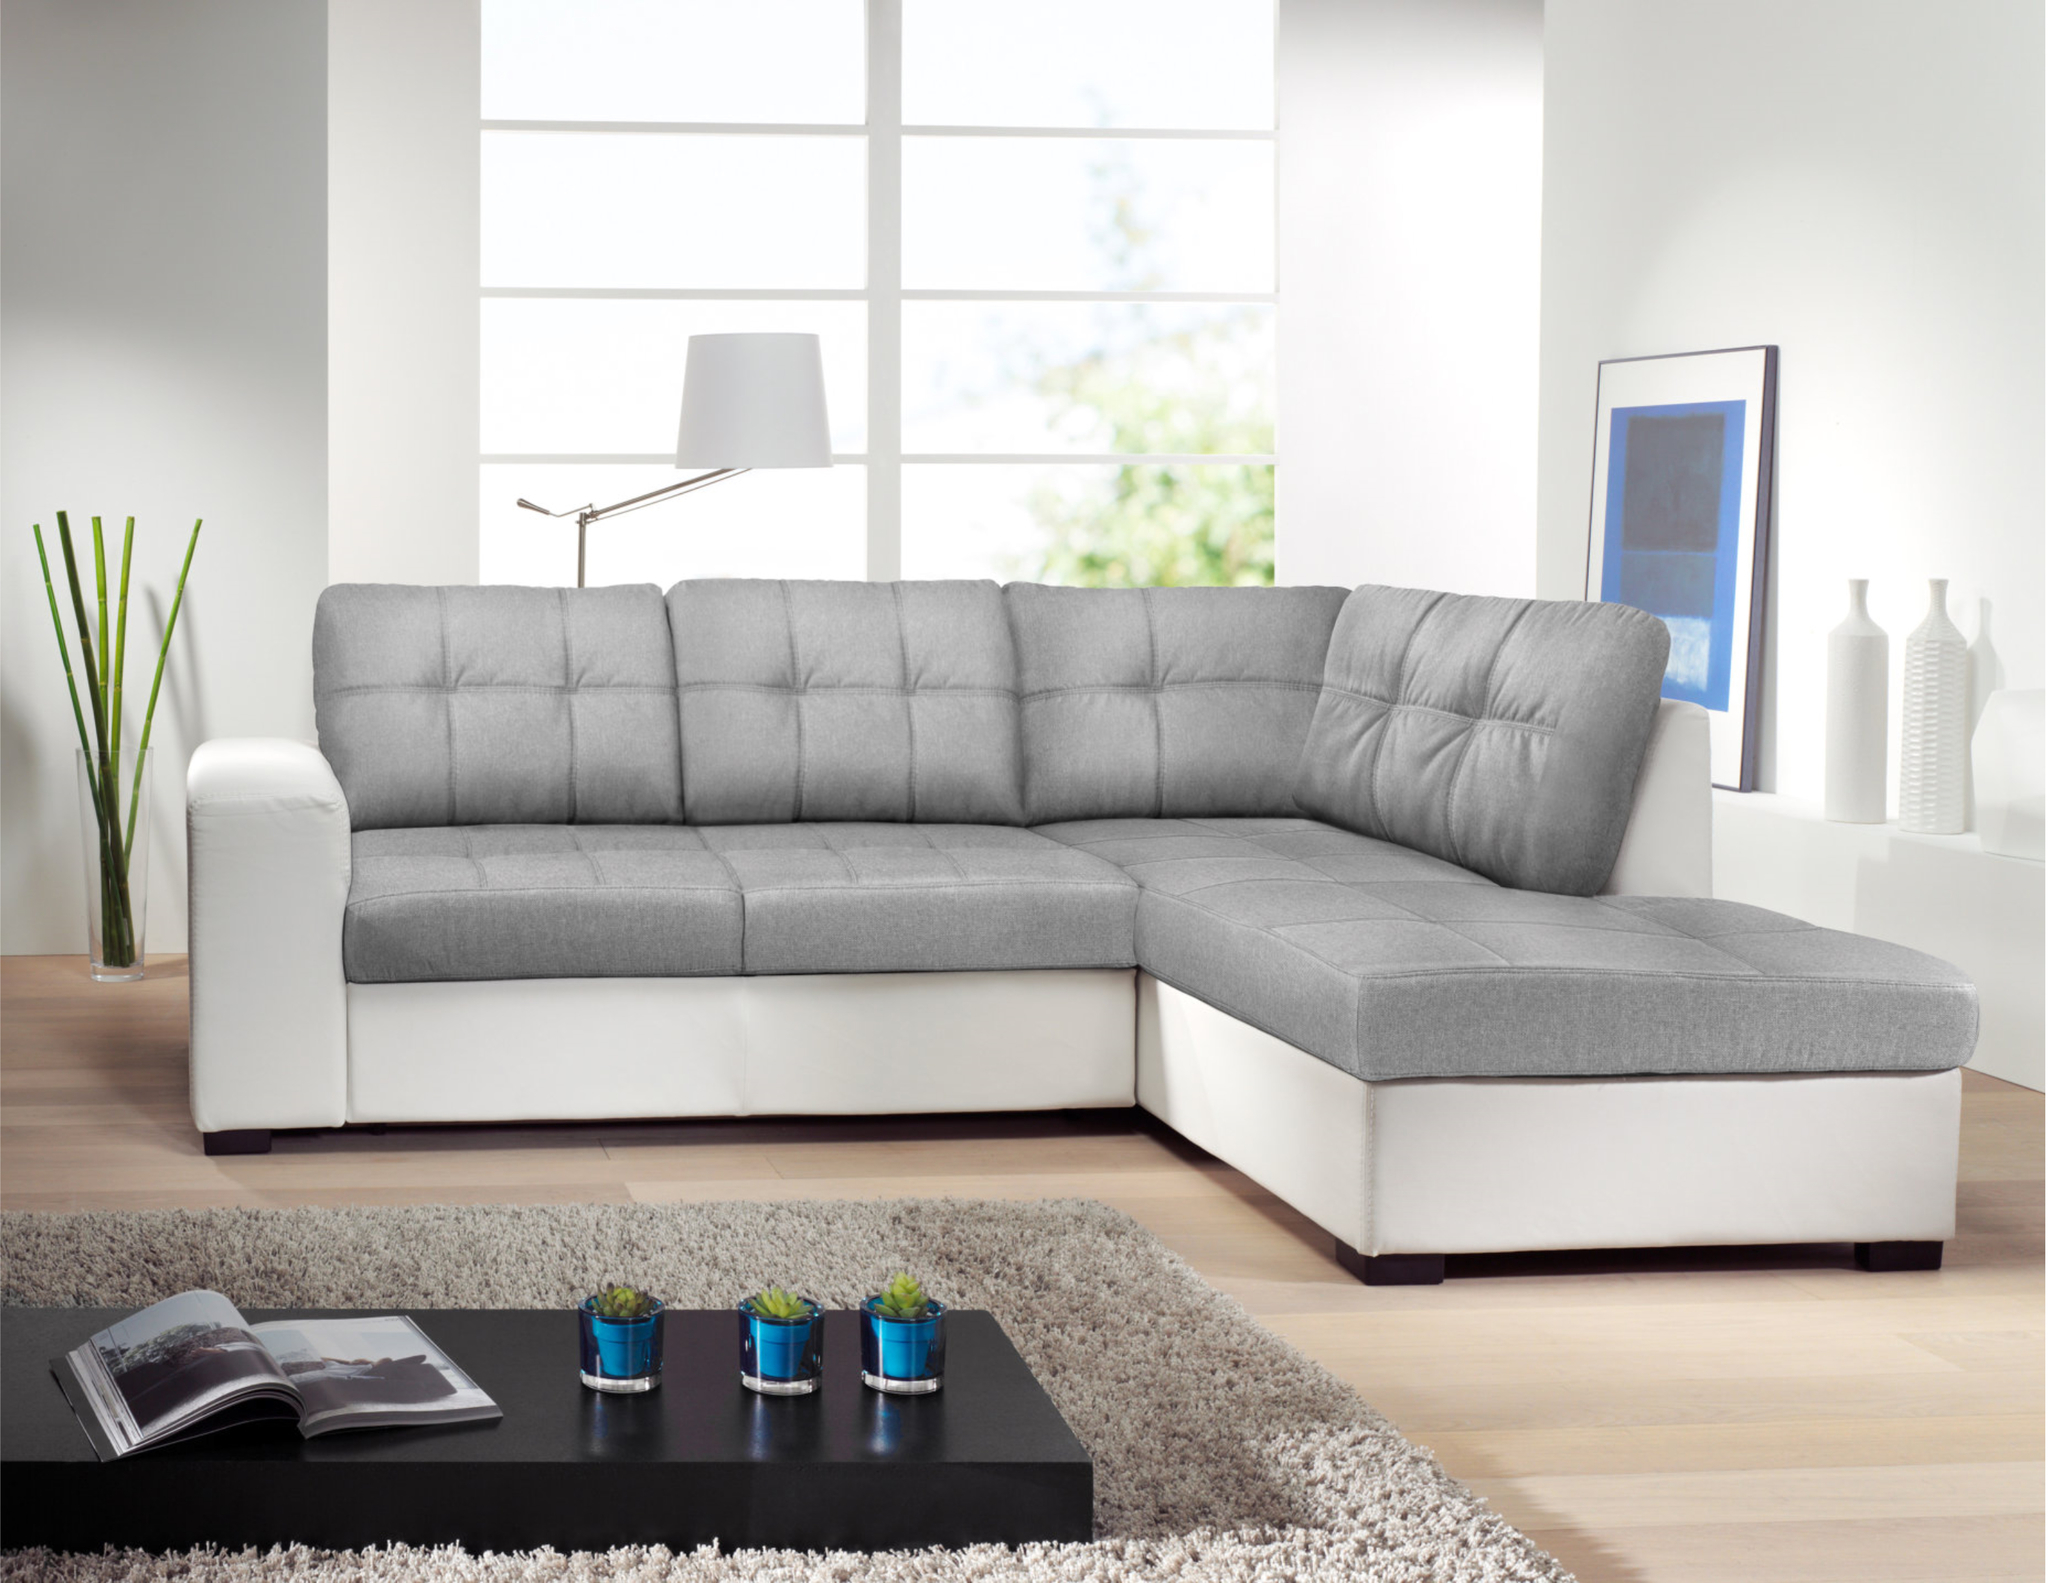 Bettsofa online bestellen excellent innovation schlafsofa for Schlafsofa tchibo